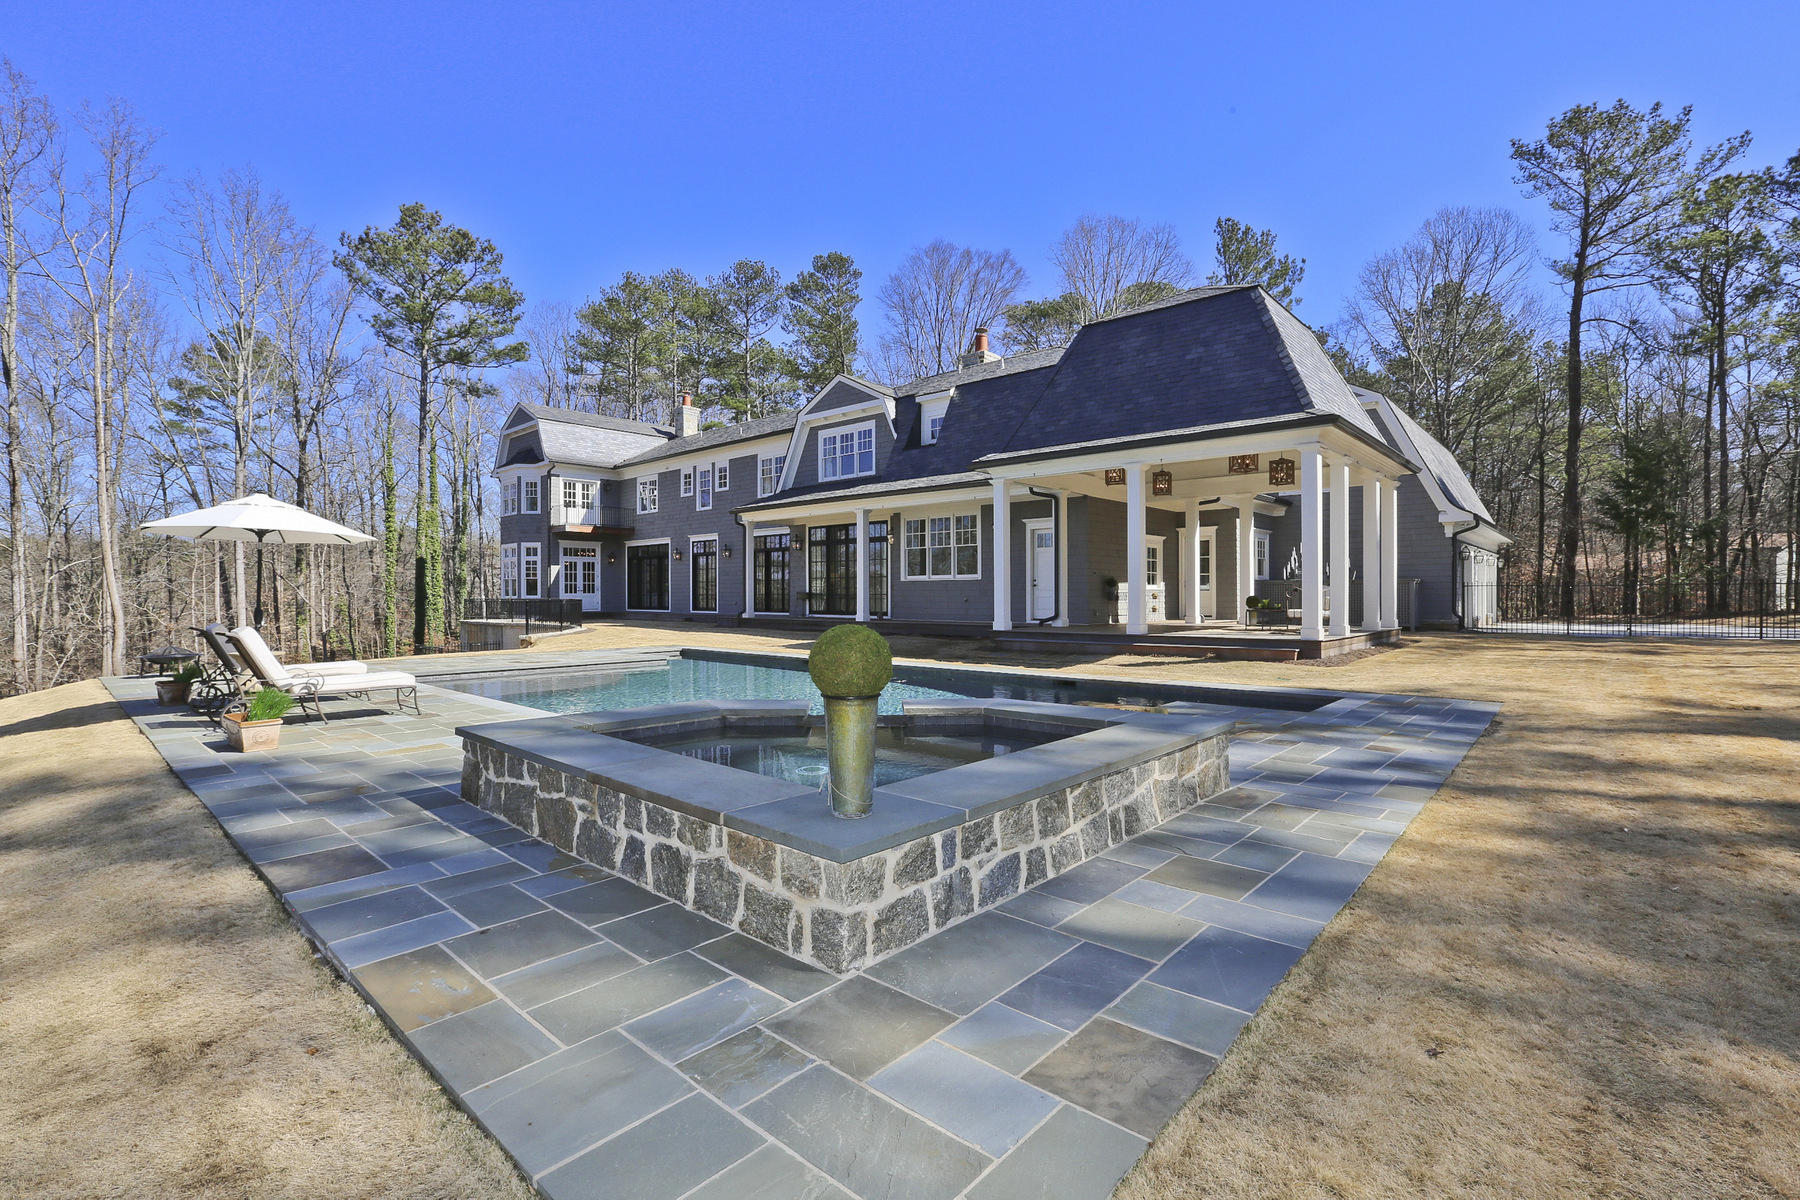 Casa Unifamiliar por un Venta en Custom Home Overlooking Chattahoochee River 5850 Winterthur Drive Sandy Springs, Georgia, 30328 Estados Unidos